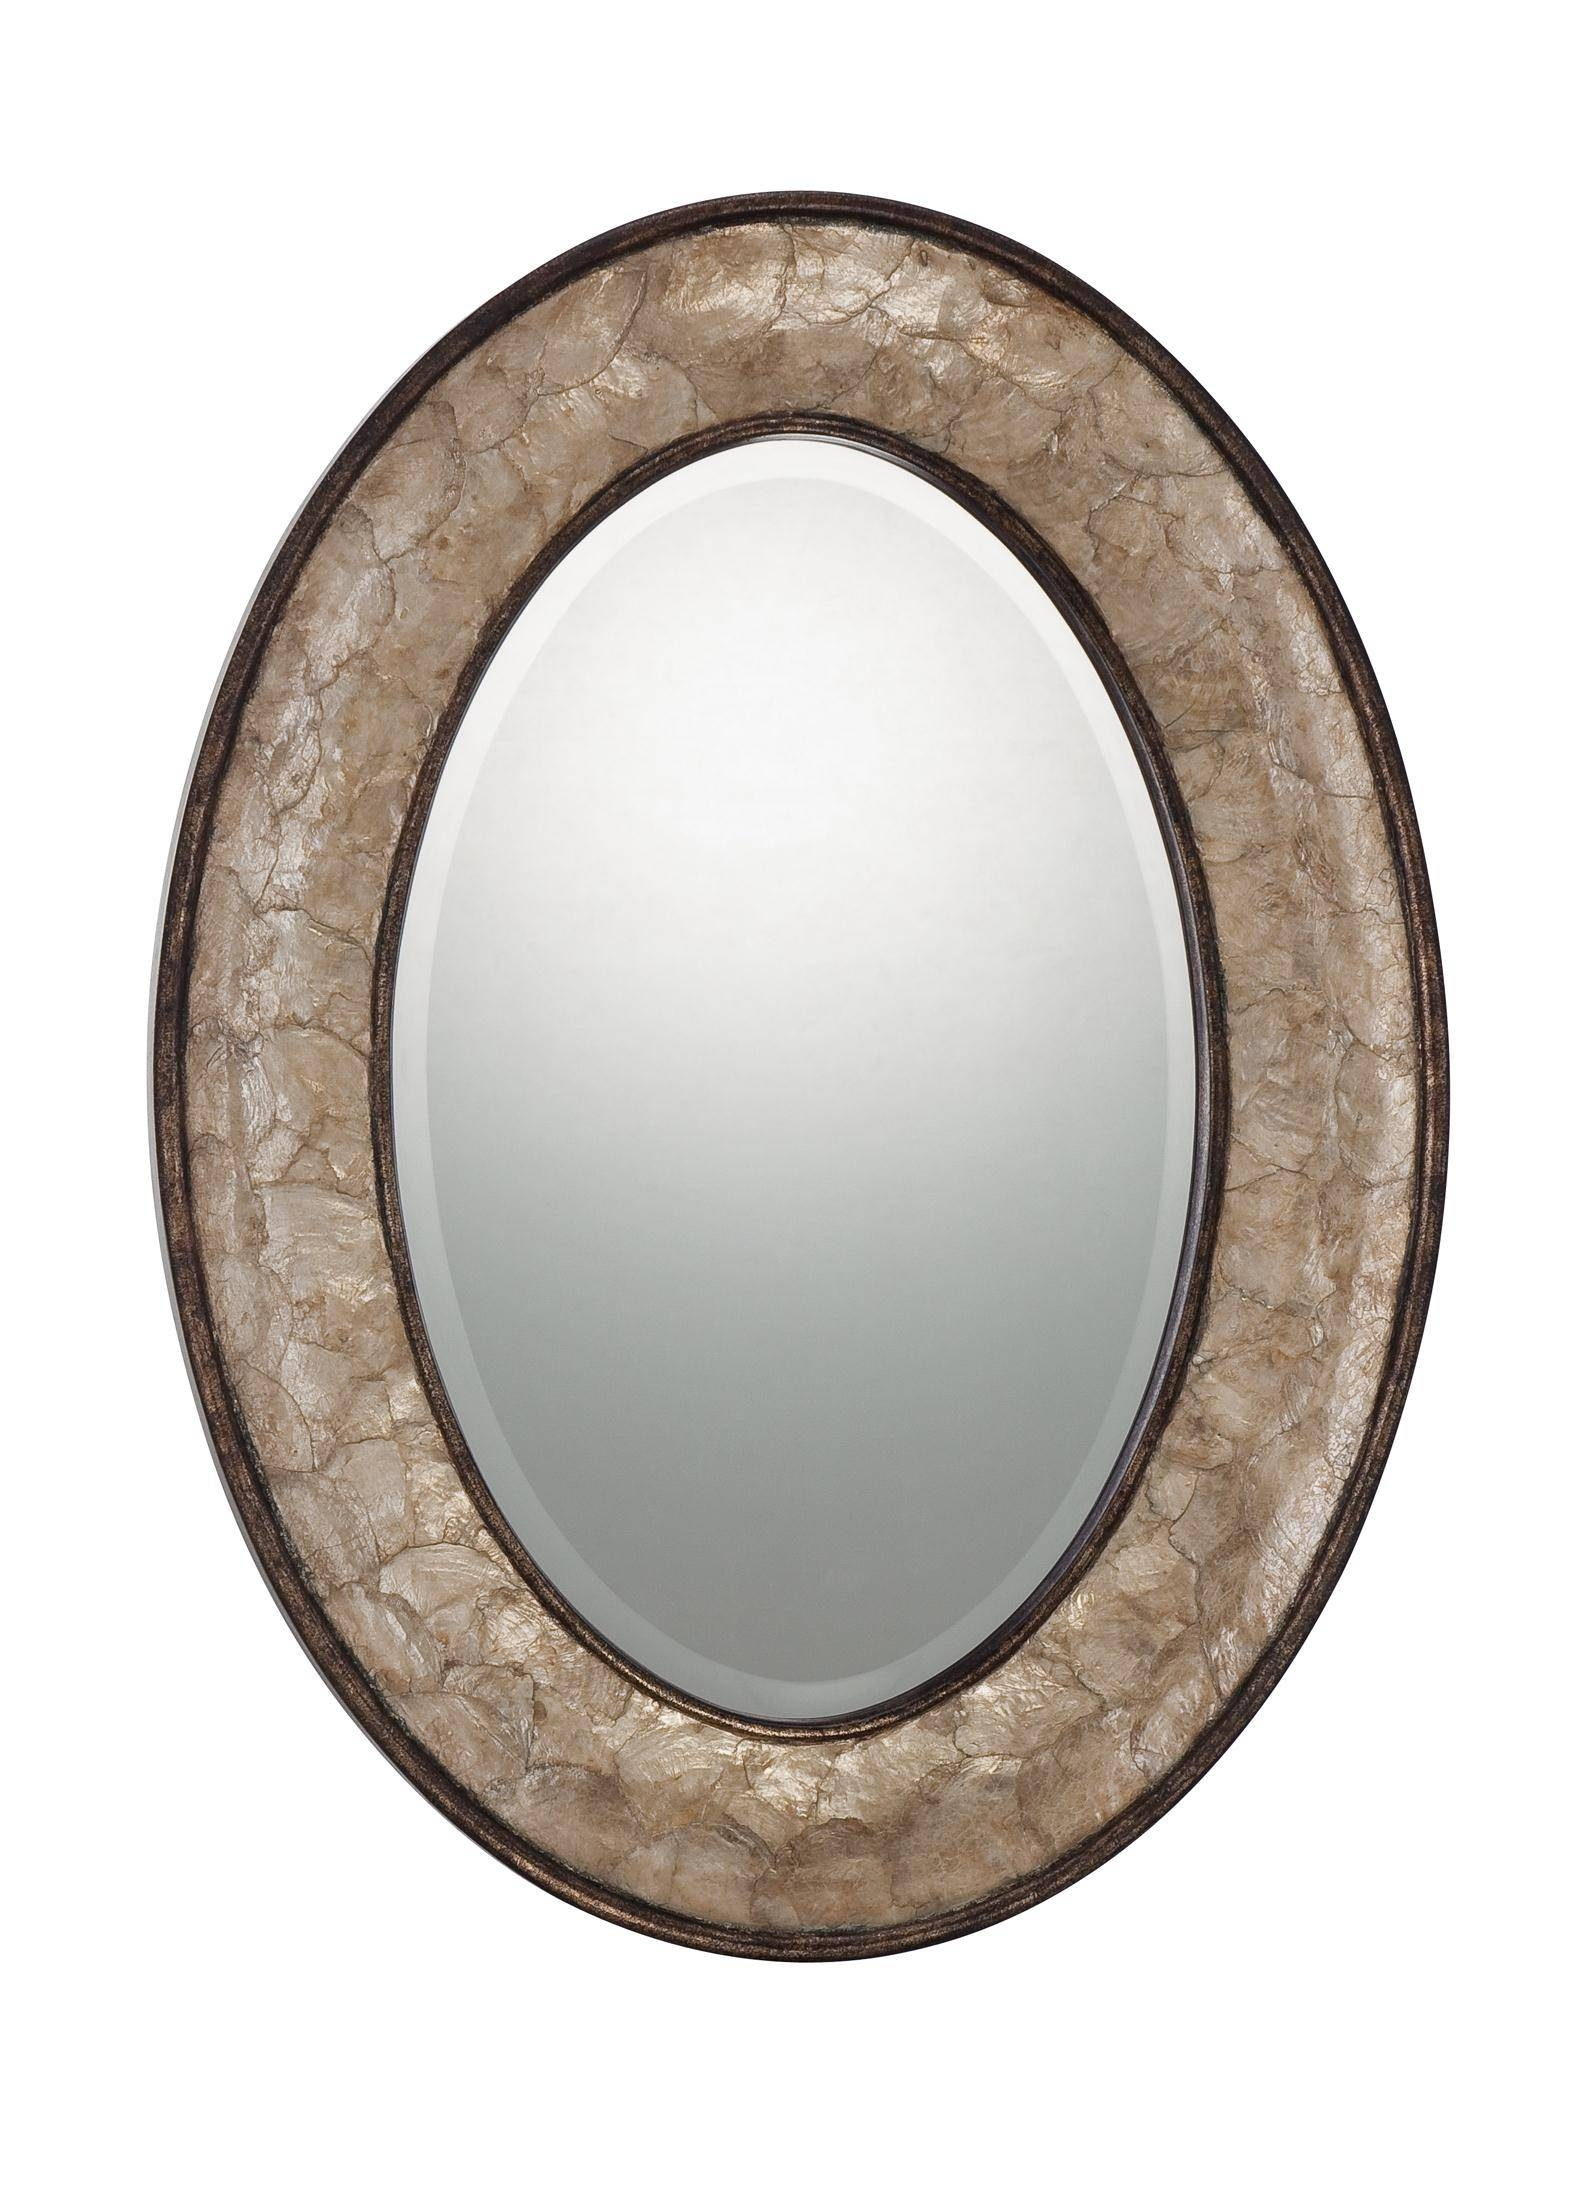 Oval Bathroom Mirrors Beautiful | Home Designjohn intended for Oval Mirrors for Walls (Image 18 of 25)